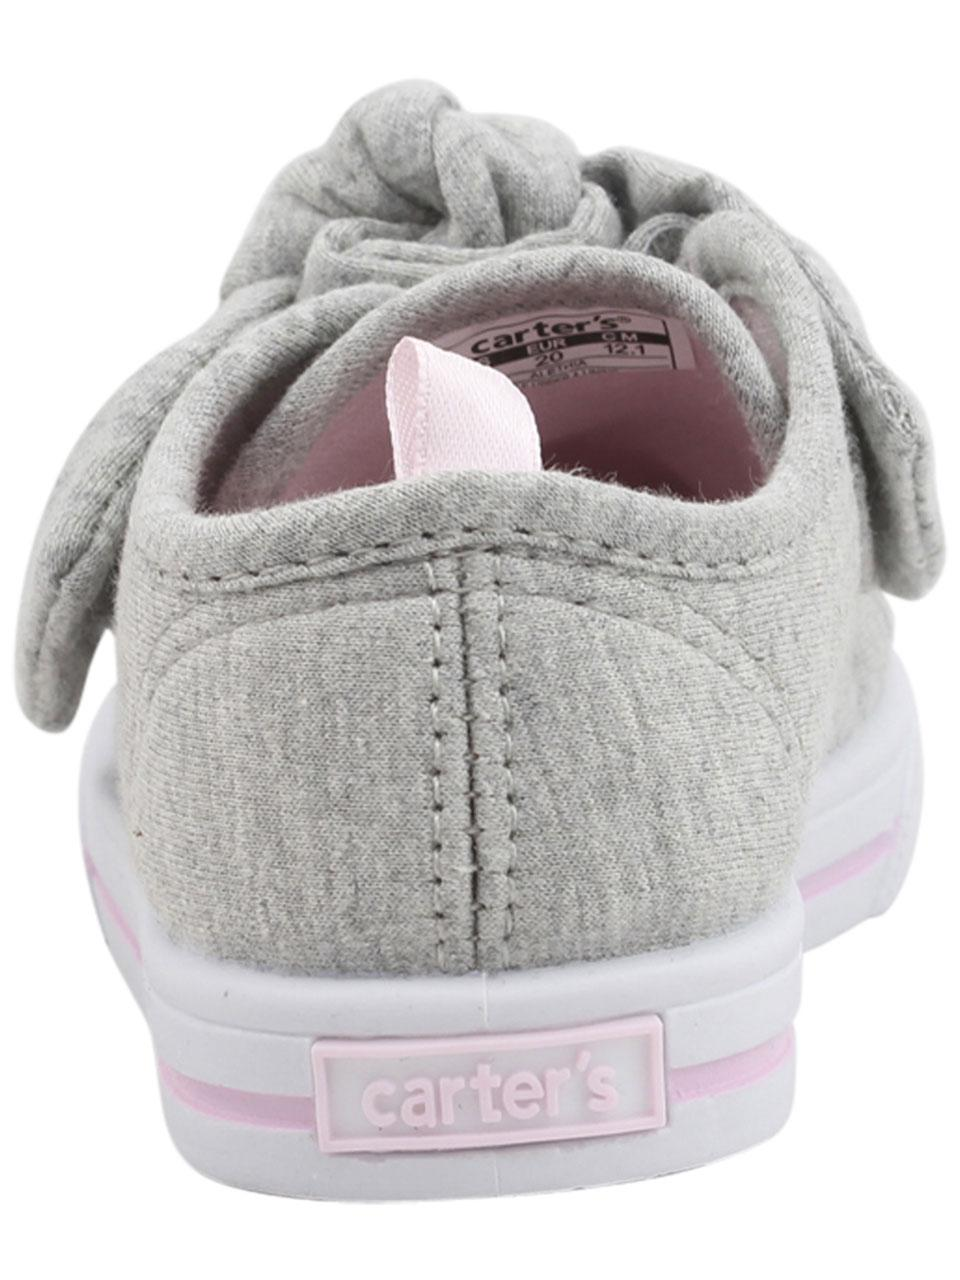 386d053e048 Carter s Toddler Little Girl s Alethia Loafers Shoes by Carter s